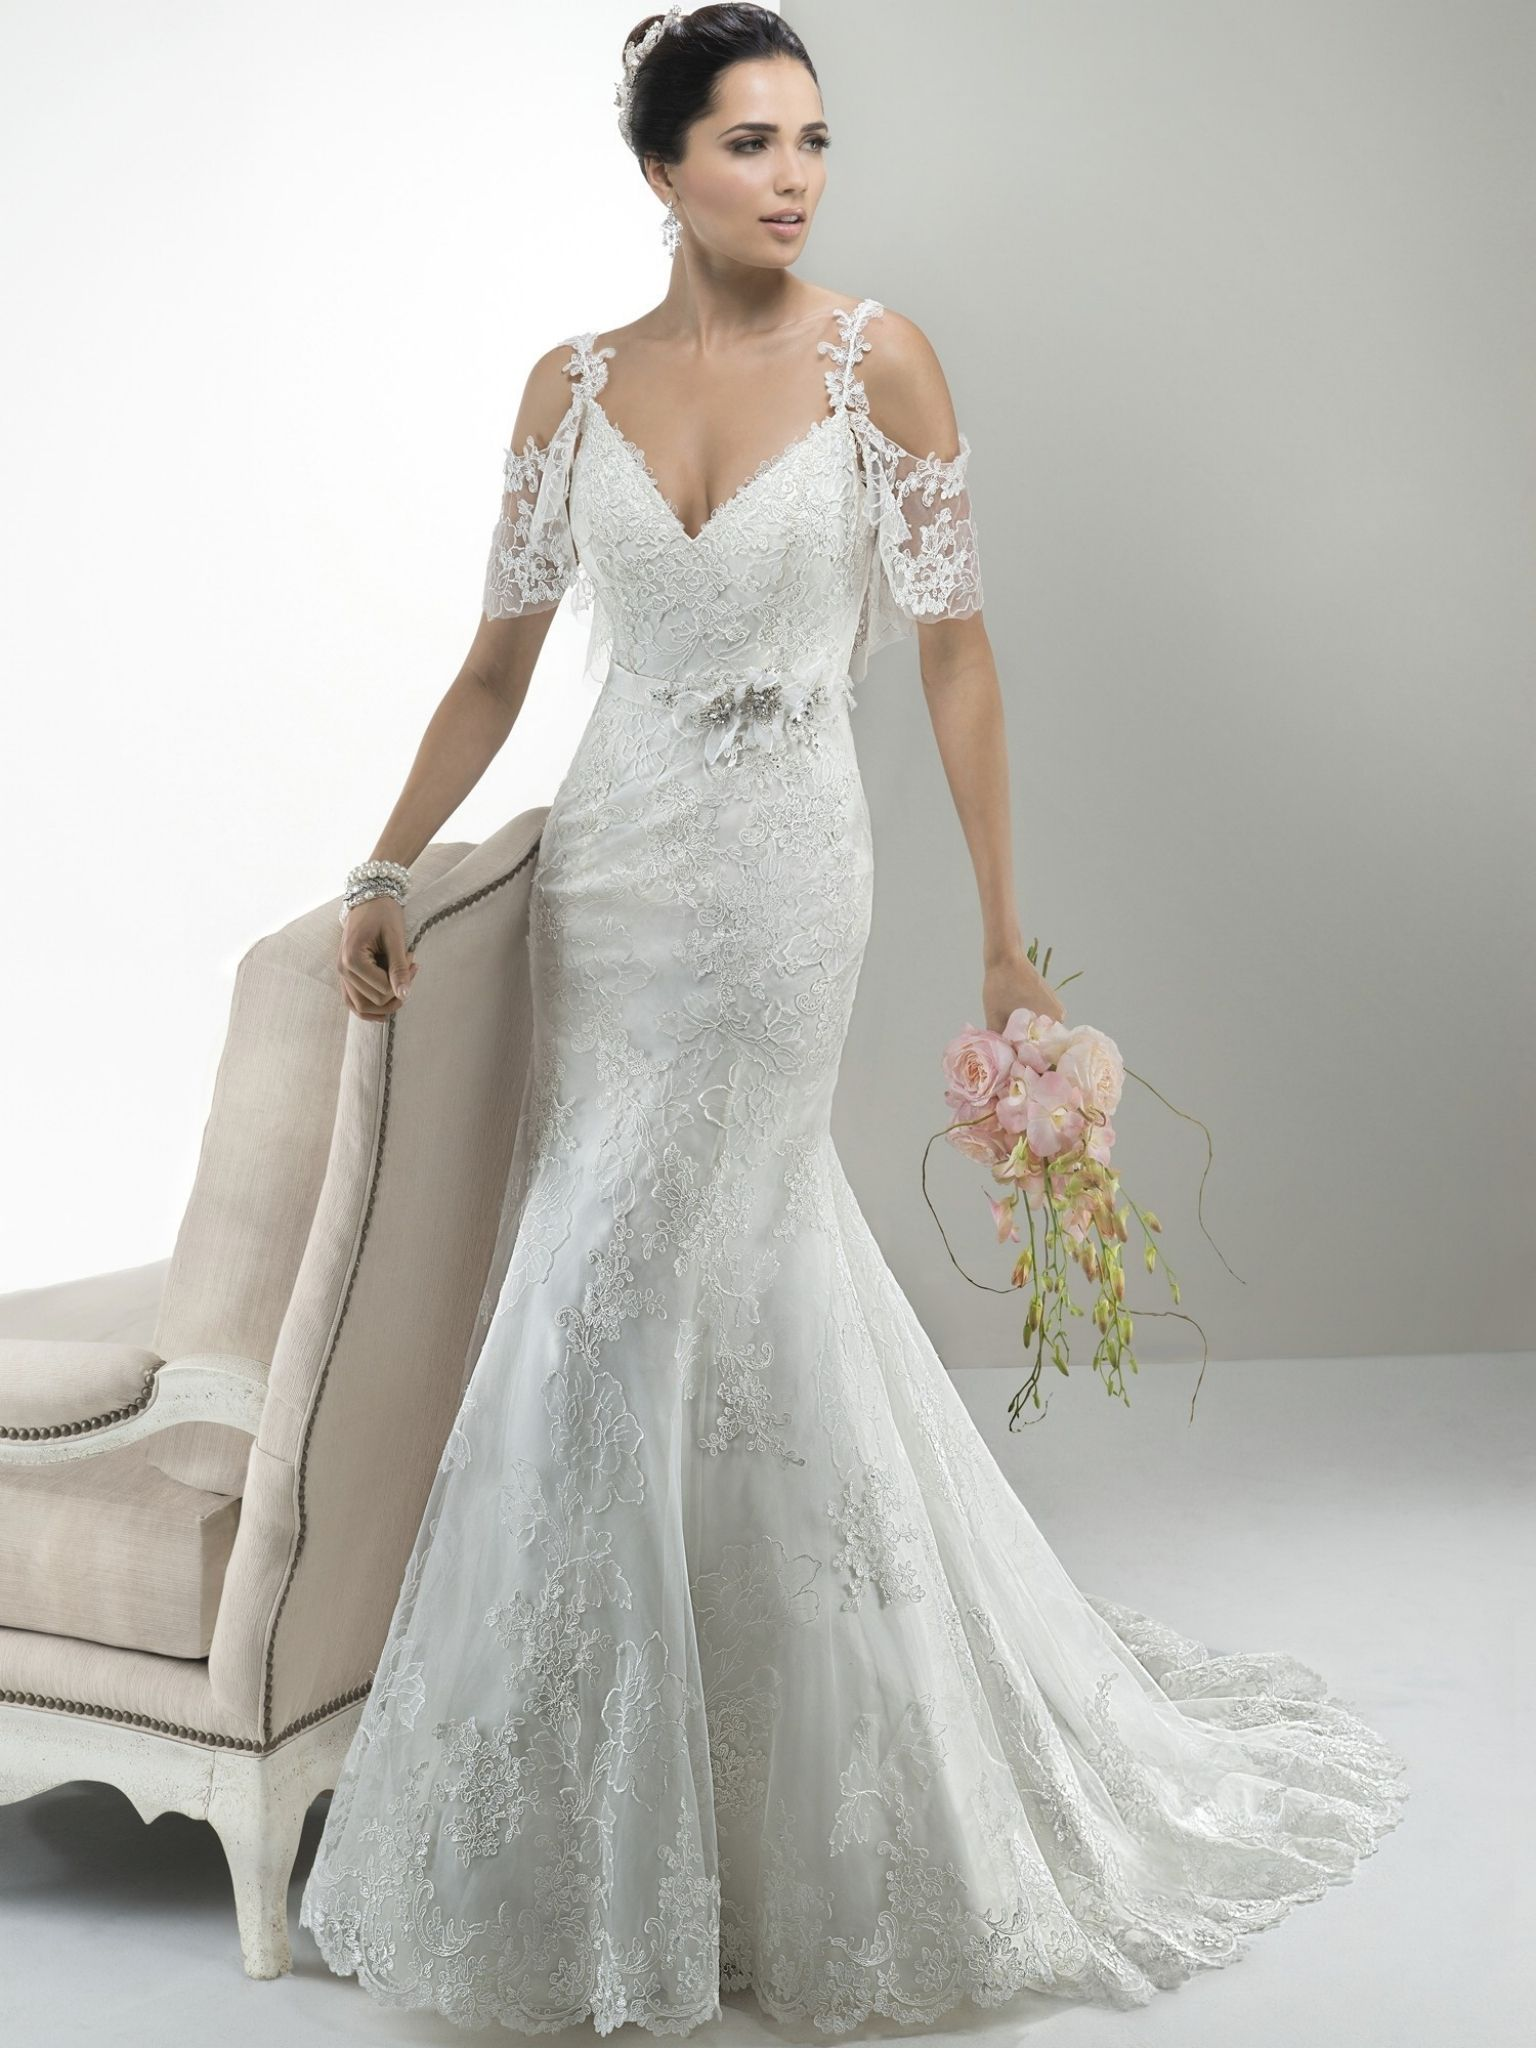 maggie sottero wedding dresses prices - plus size dresses for ...